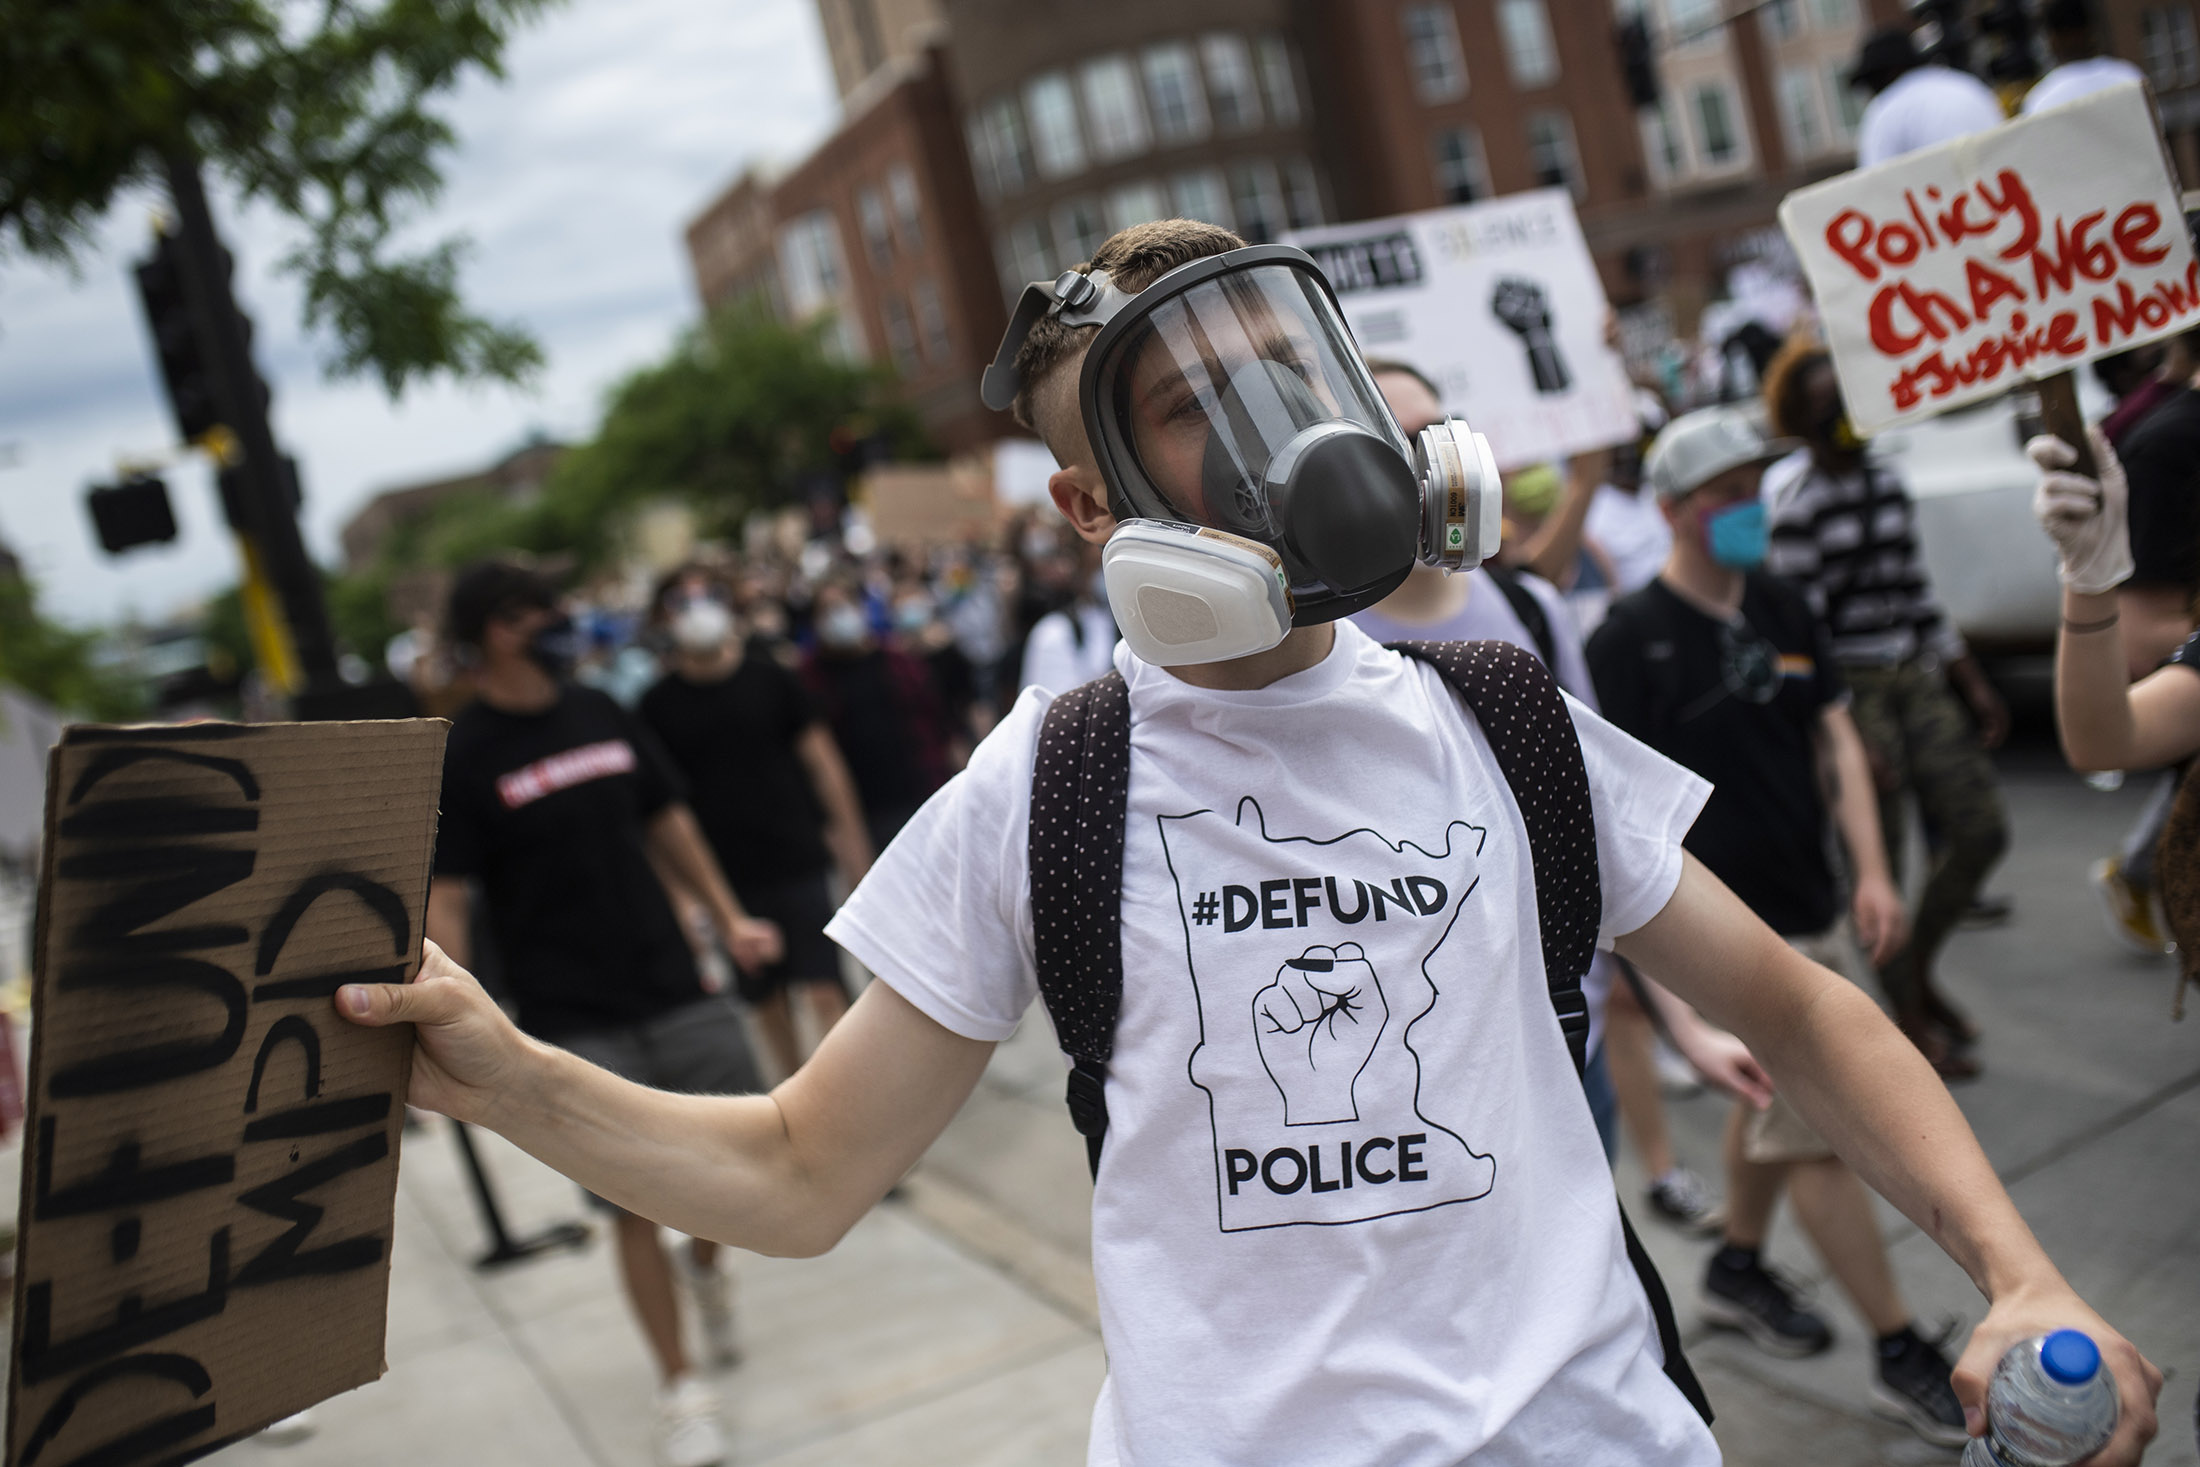 A demonstrator wears a defund police T shirt during a protest in Minneapolis on June 6.